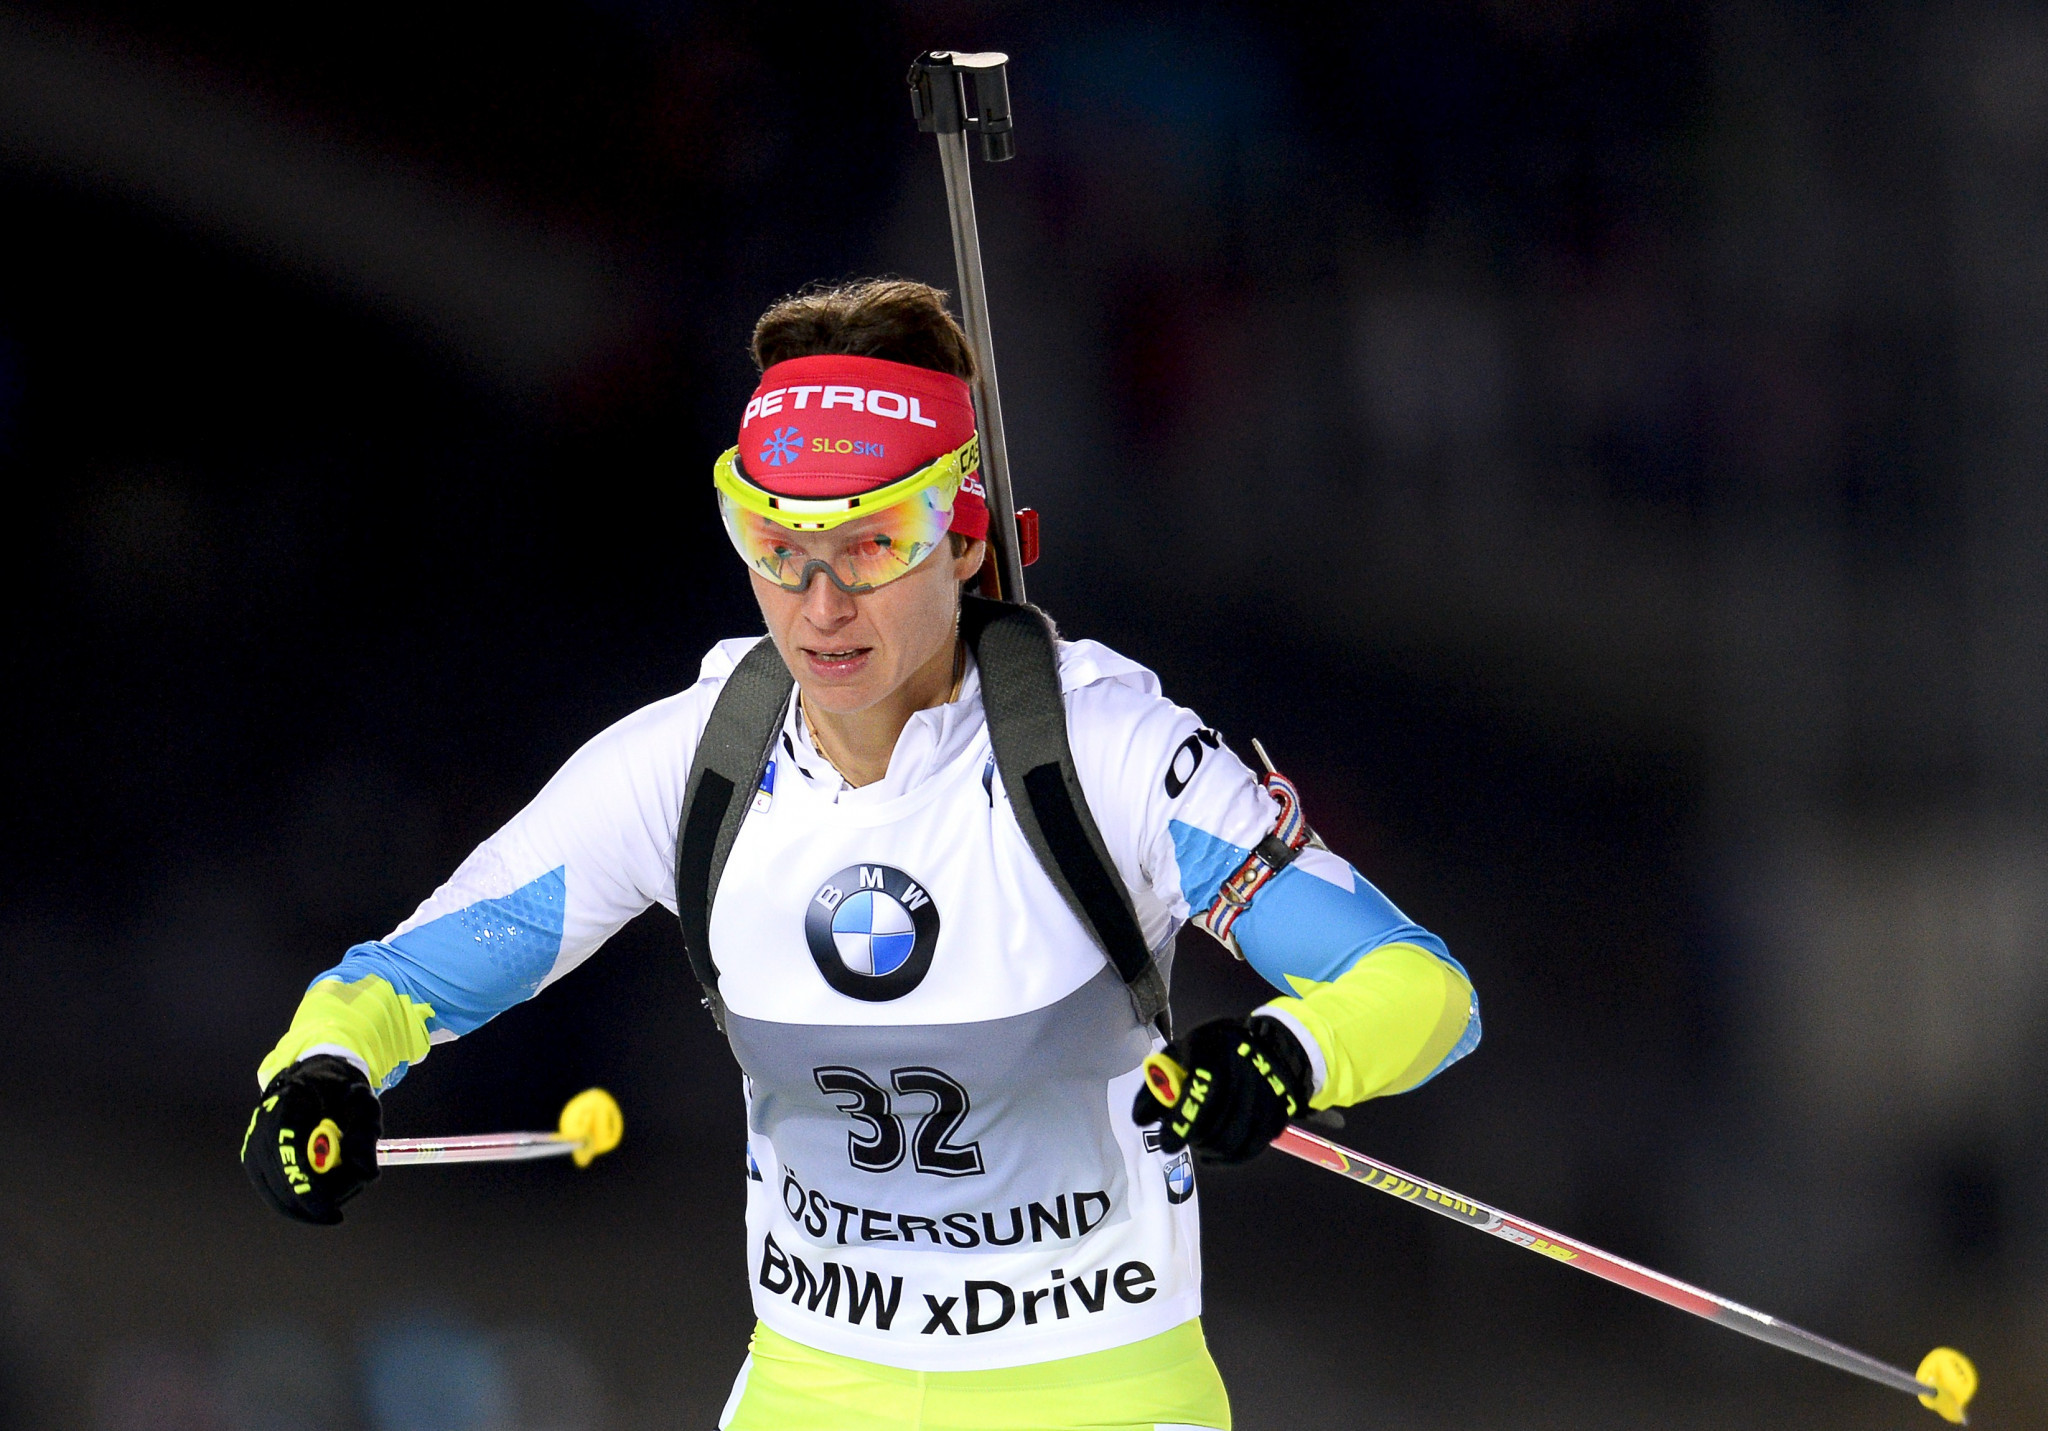 Slovenian biathlete disqualified from Vancouver 2010 by IOC after positive retest